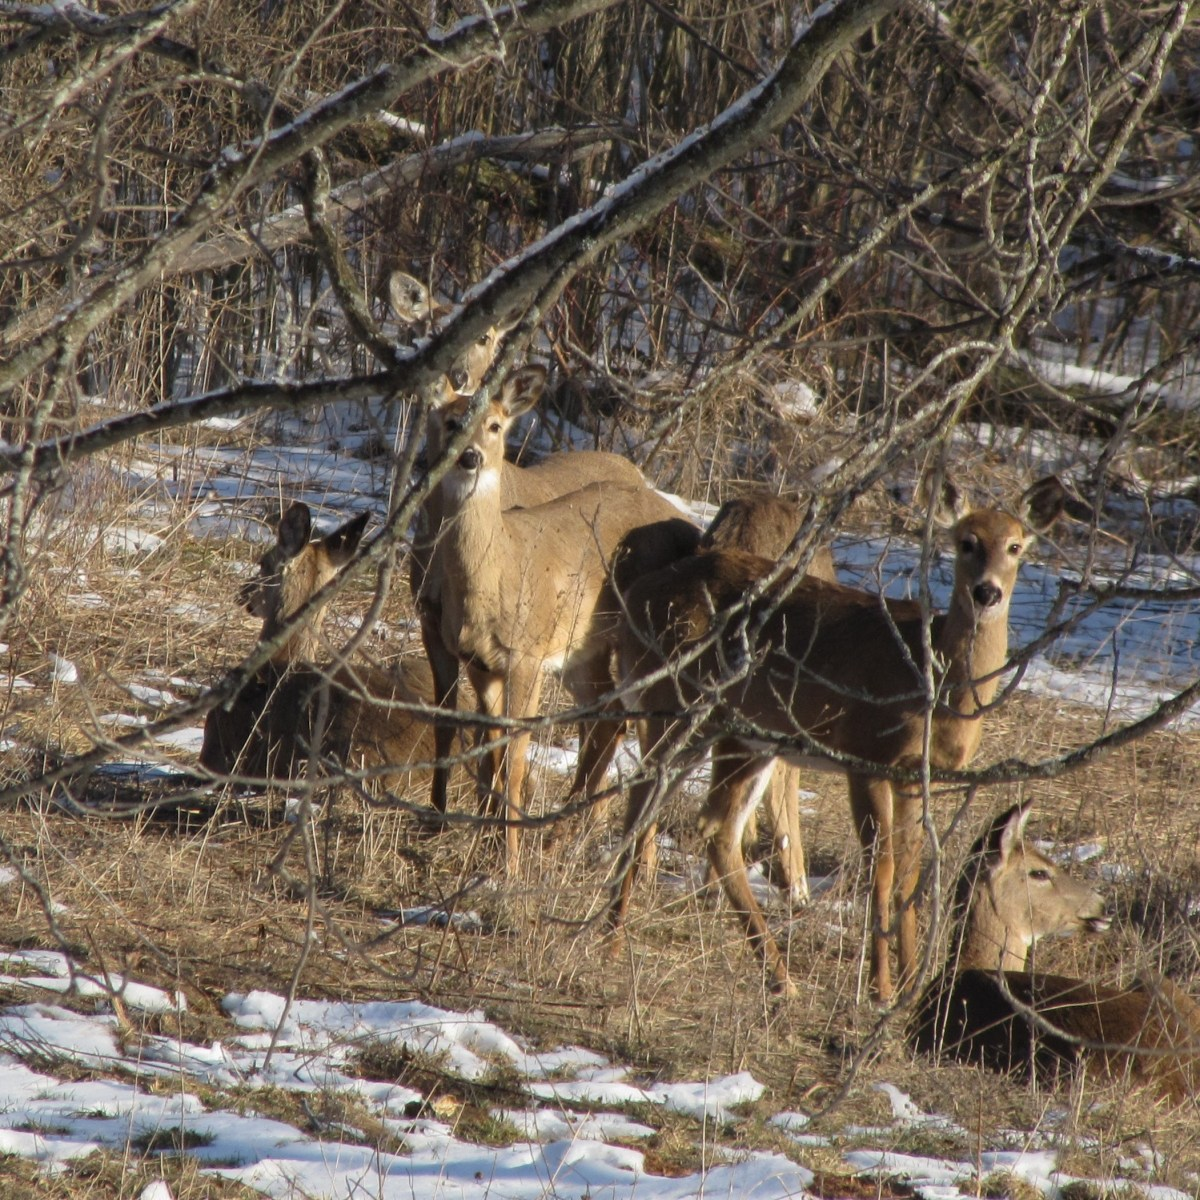 A group of white-tailed deer on a hillside in the sun.